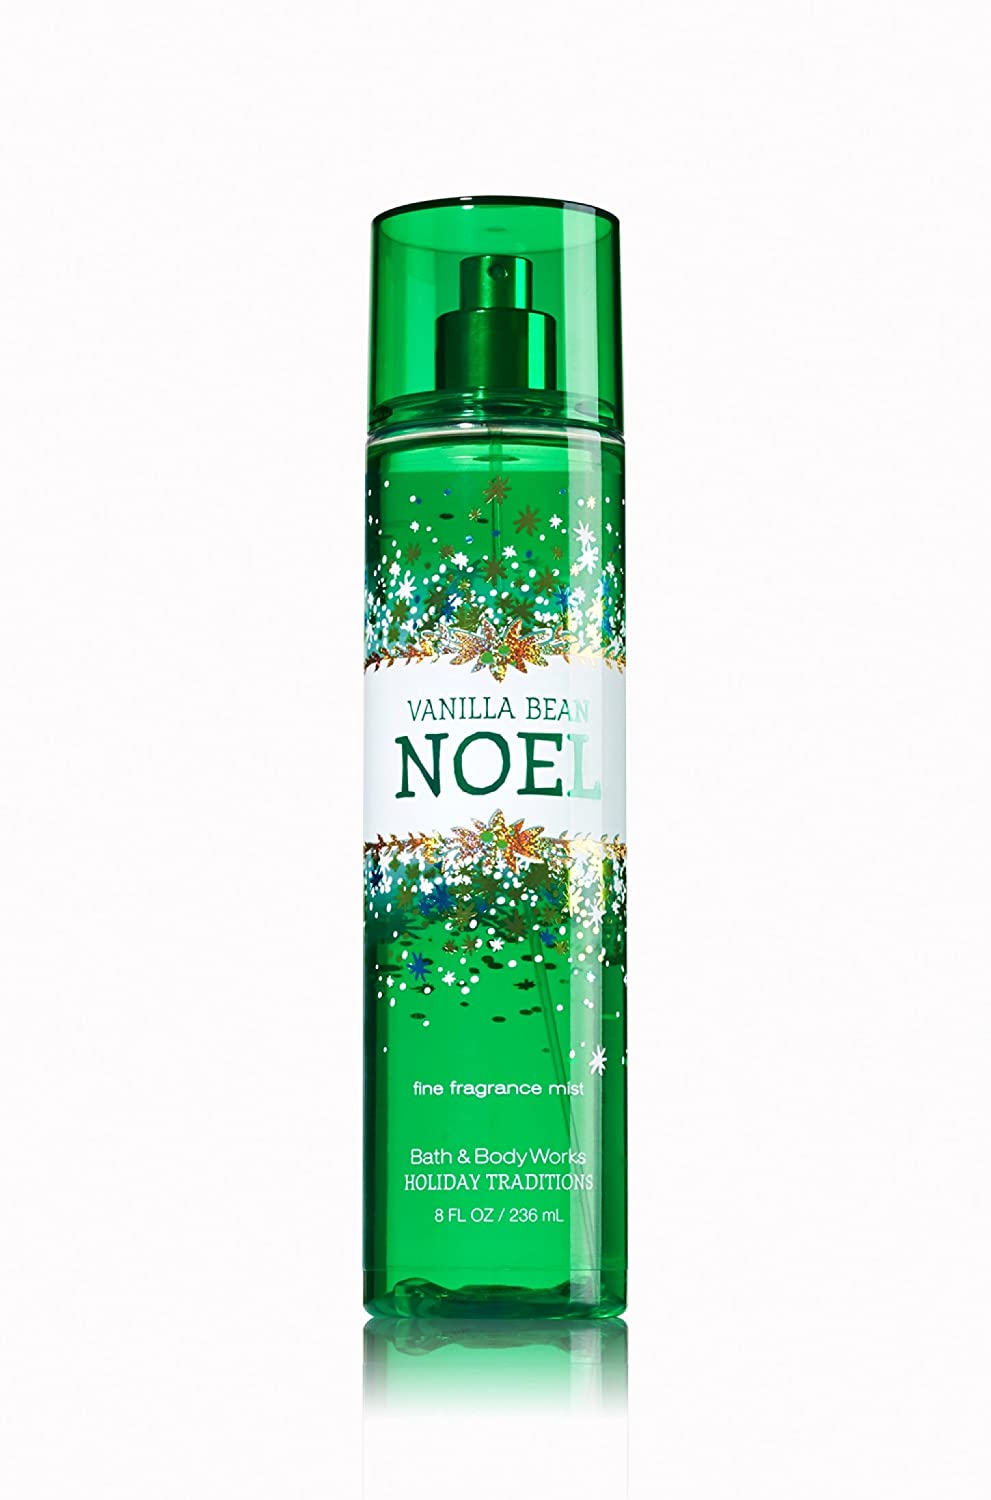 Bath and body works holiday scents - Amazon Com Bath And Body Works Holiday Traditions Vanilla Bean Noel Fine Fragrance Mist 8 0 Fl Oz Beauty